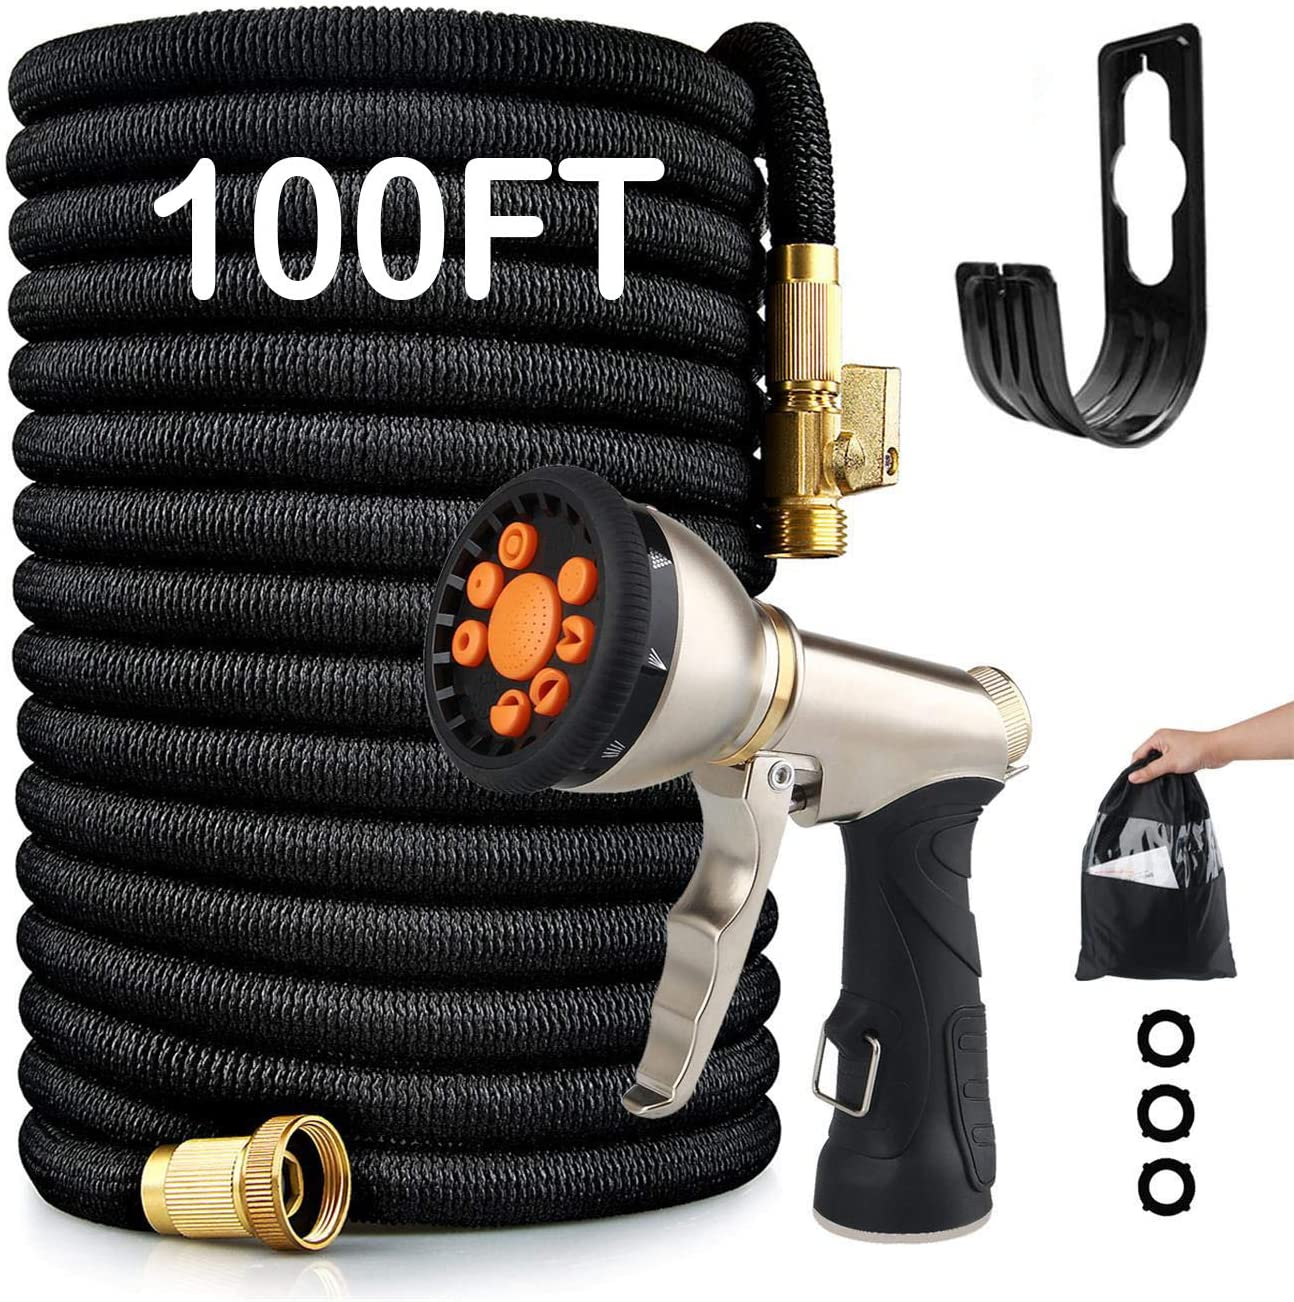 Expandable Garden Hose 100FT - 9 Function Heavy Duty Garden Spray Nozzle with 3/4 Brass Connectors for Courtyard & Car Wash (Black, 100FT)